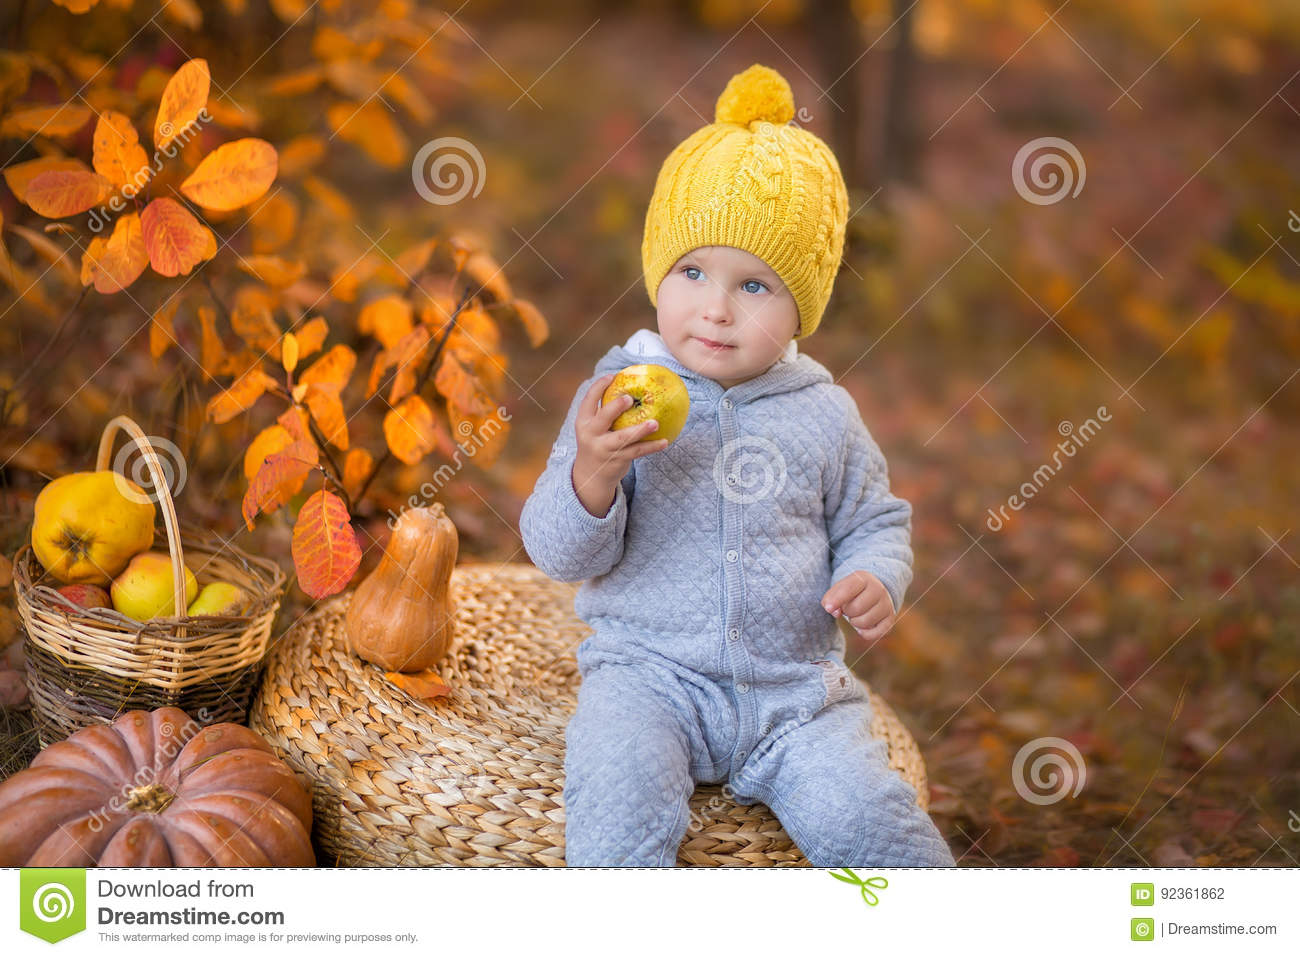 Little cute baby boy in yellow winter hat sitting on pumpkin in autumn forest alone